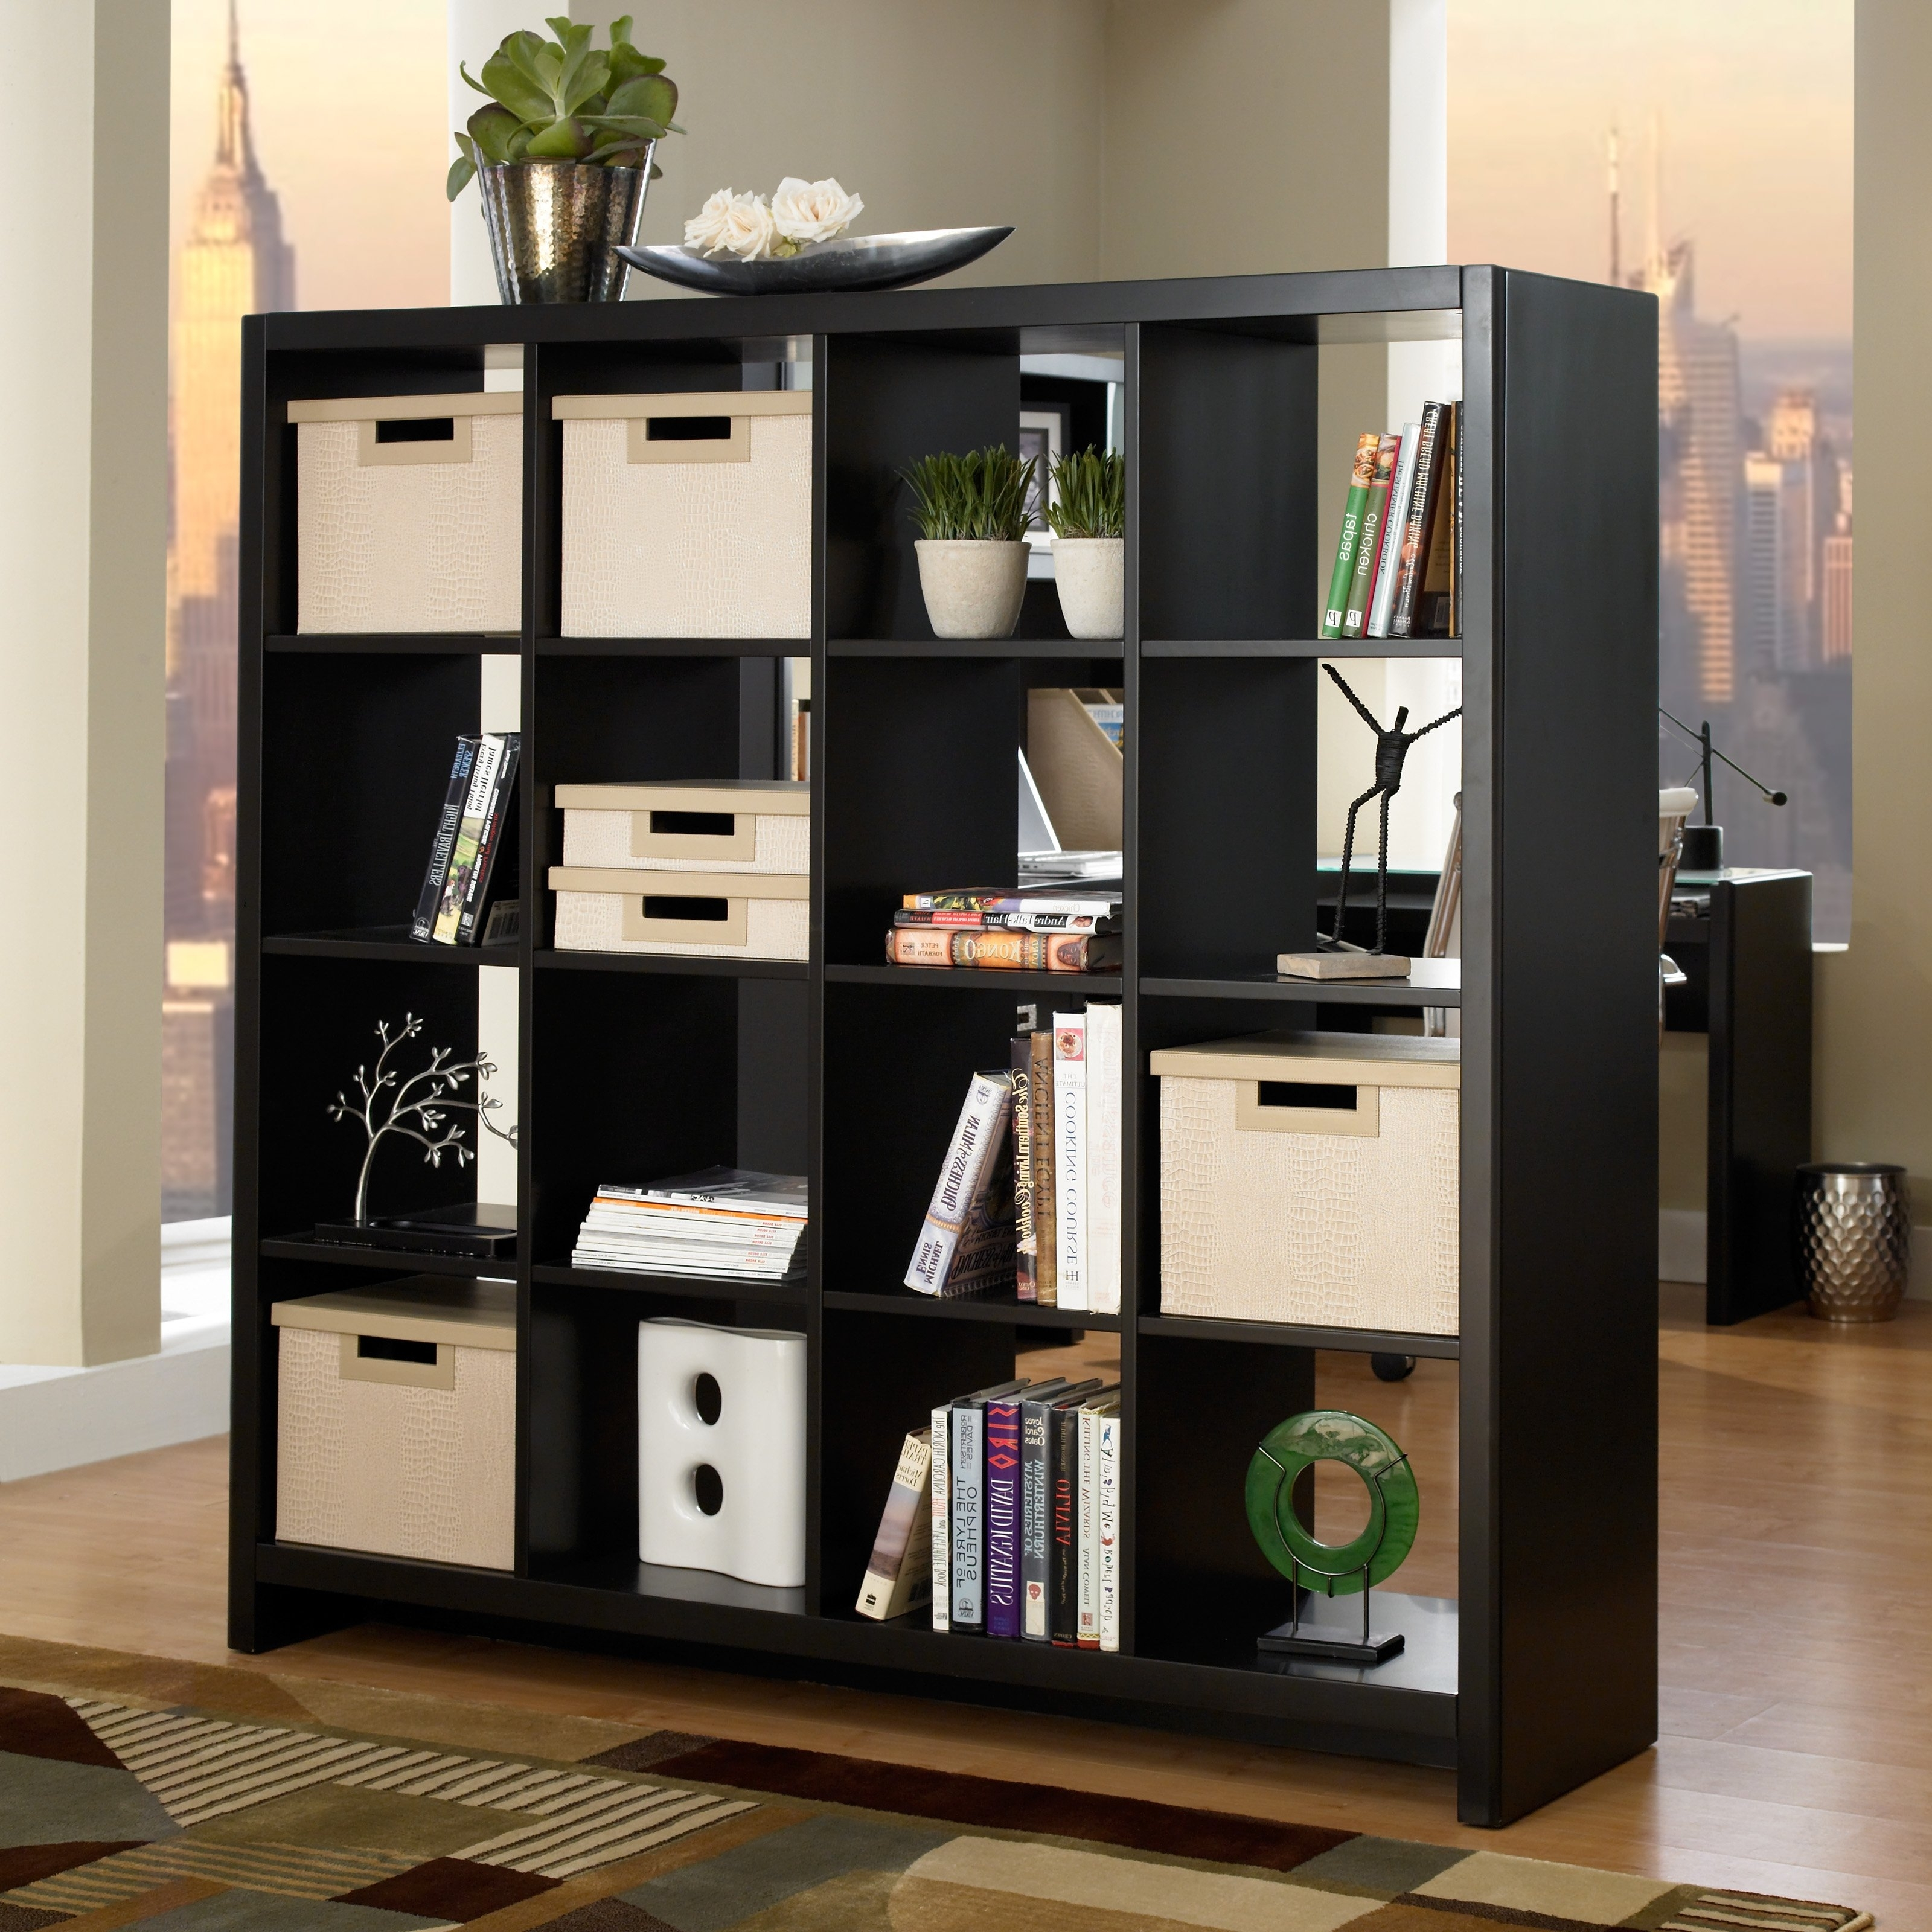 Current Tall Black Wooden Bookcase With Cubices Shelves Addedcontainer With Bookcases Room Dividers (View 12 of 15)